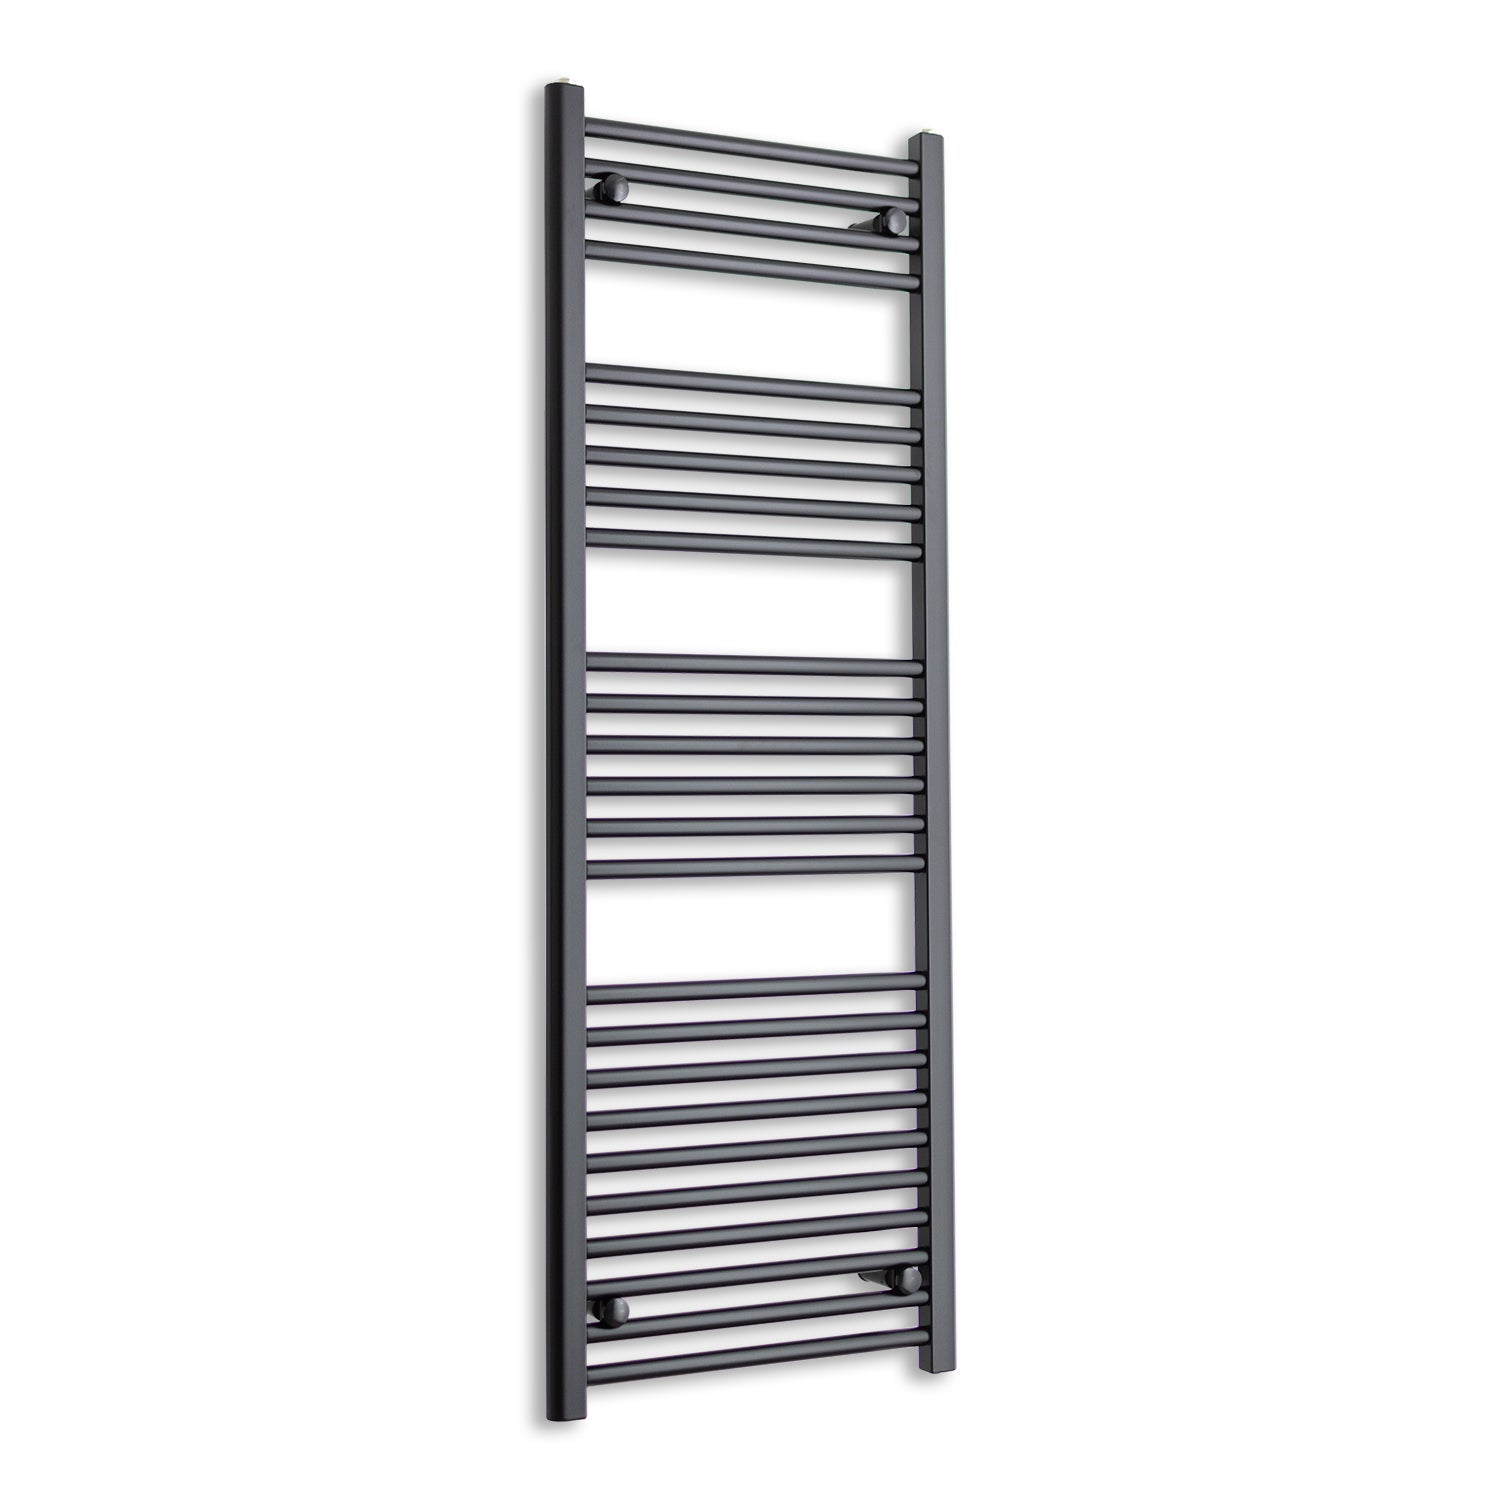 600mm Wide 1400mm High Flat Black Heated Towel Rail Radiator,Towel Rail Only